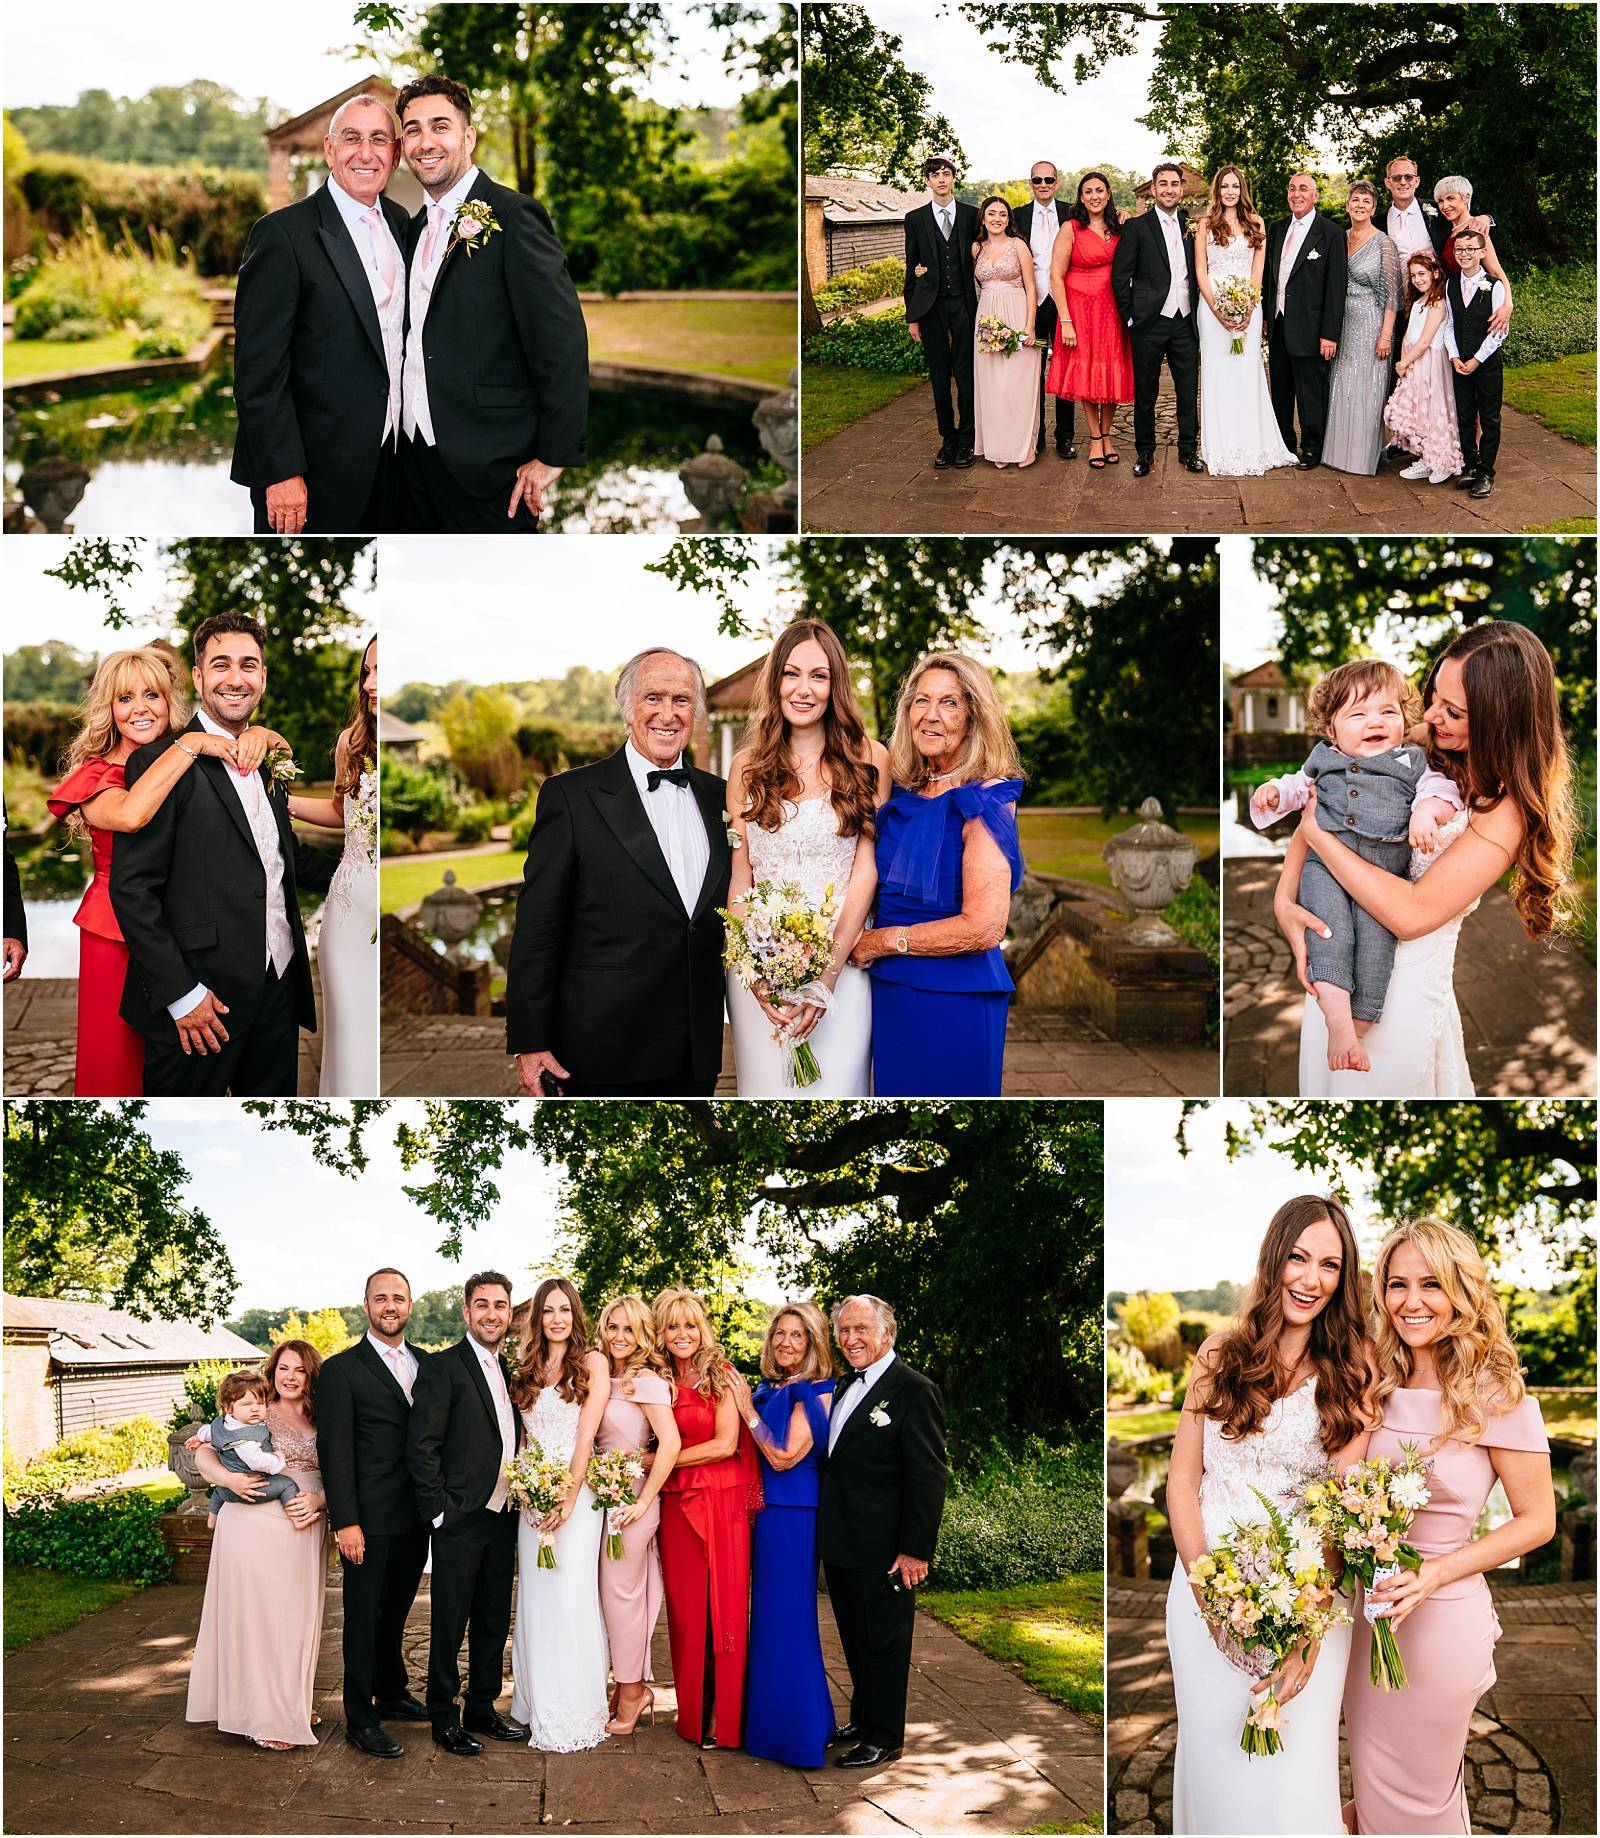 relaxed family group photographs at wedding